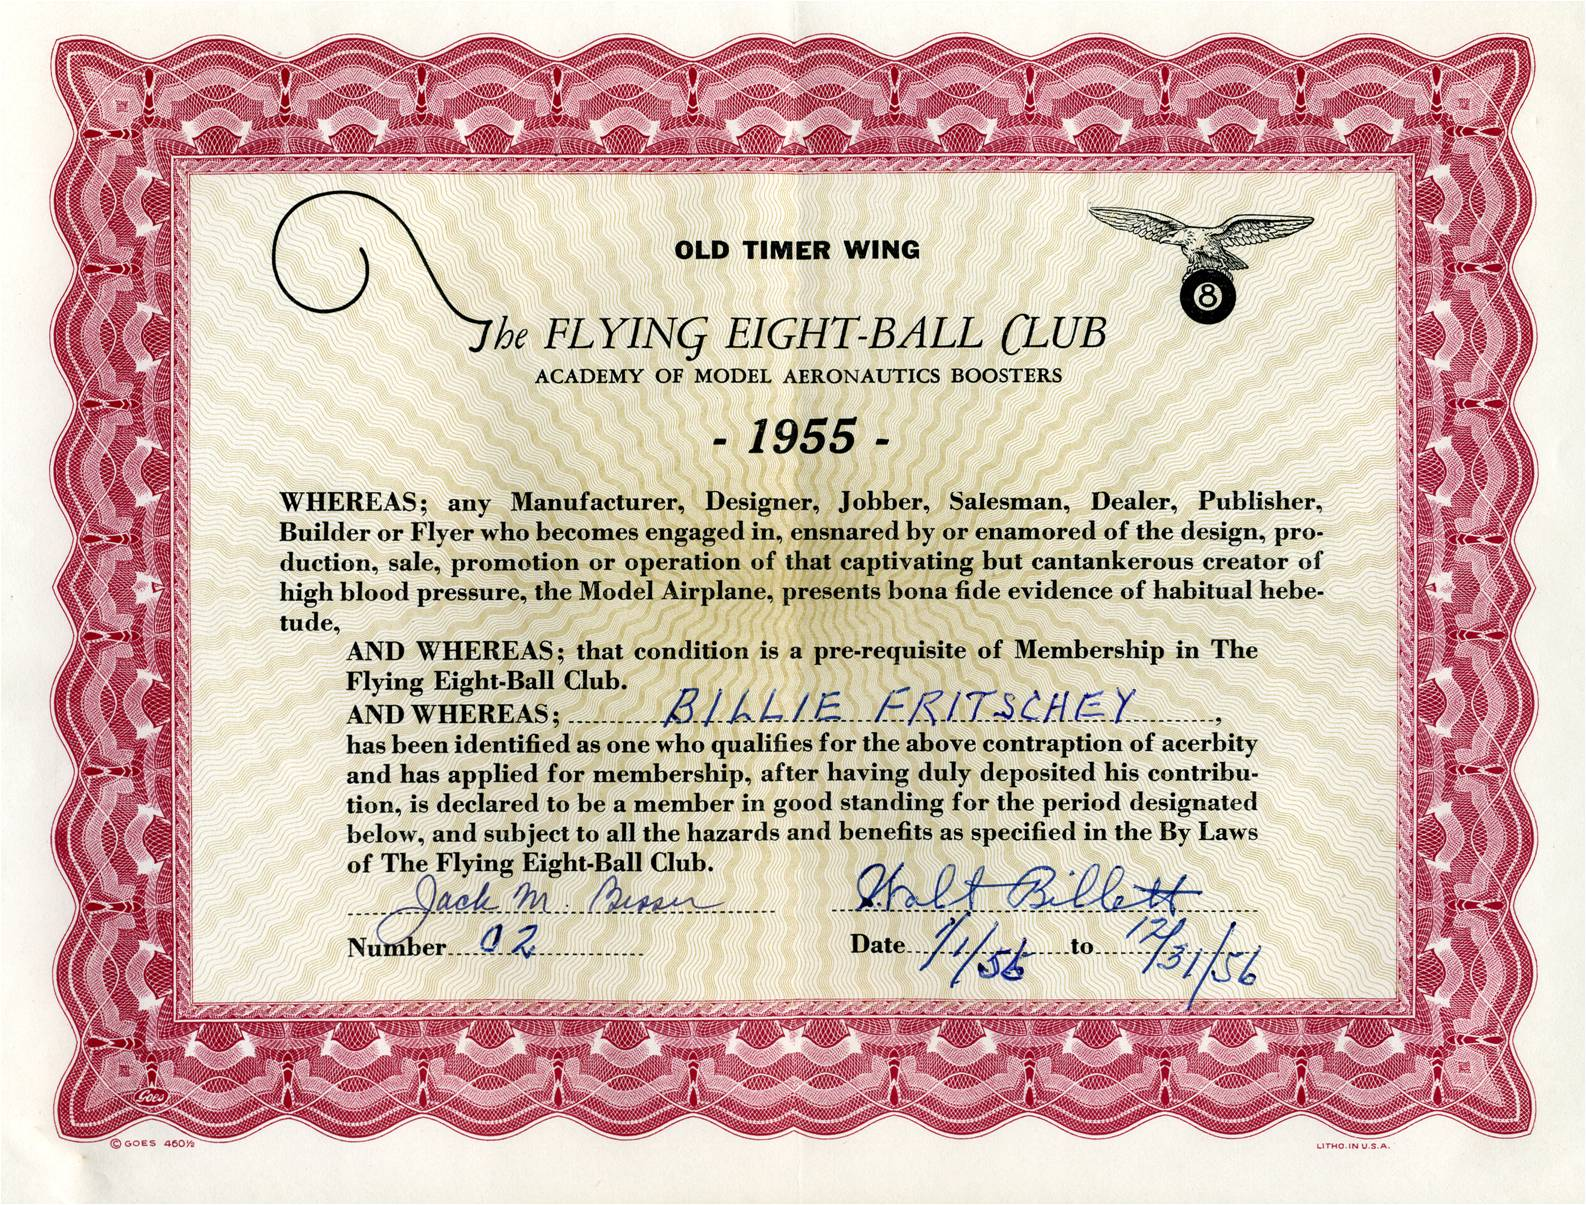 Flying Eight-Ball Club Old Timer Wing certificate, 1955. (Source: National Model Aviation Museum Archives, AMA Collection #0001.)